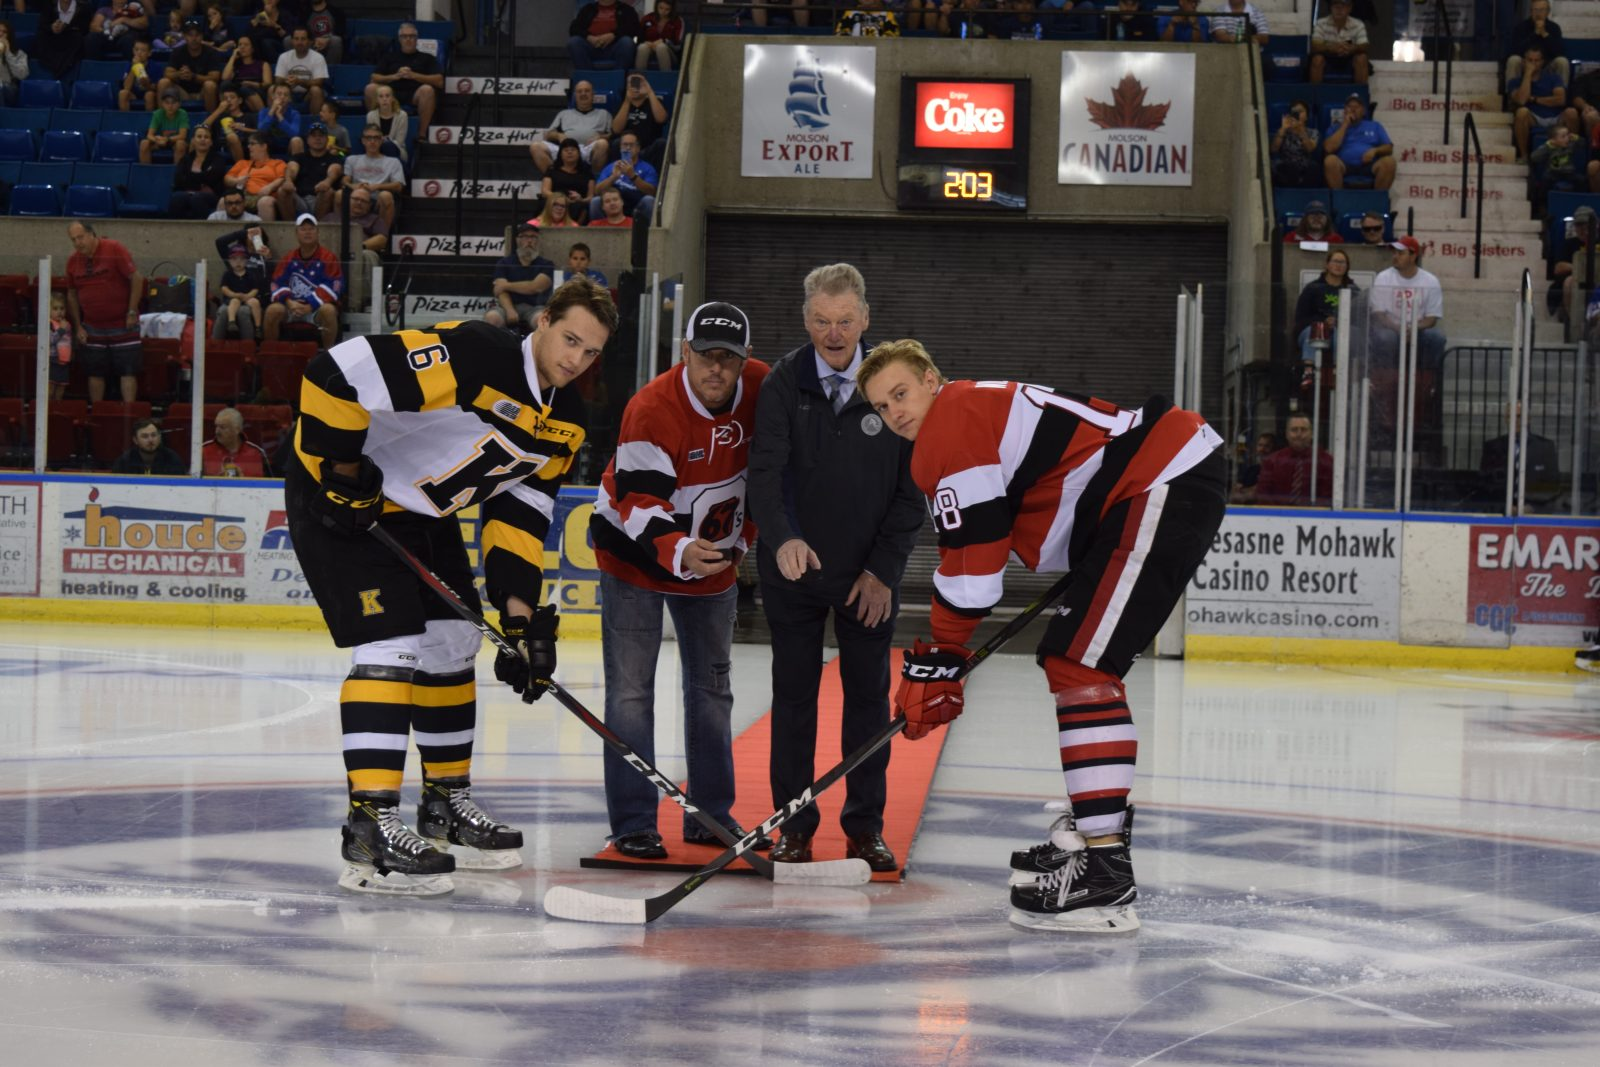 OHL hockey returns to the Cornwall Civic Complex